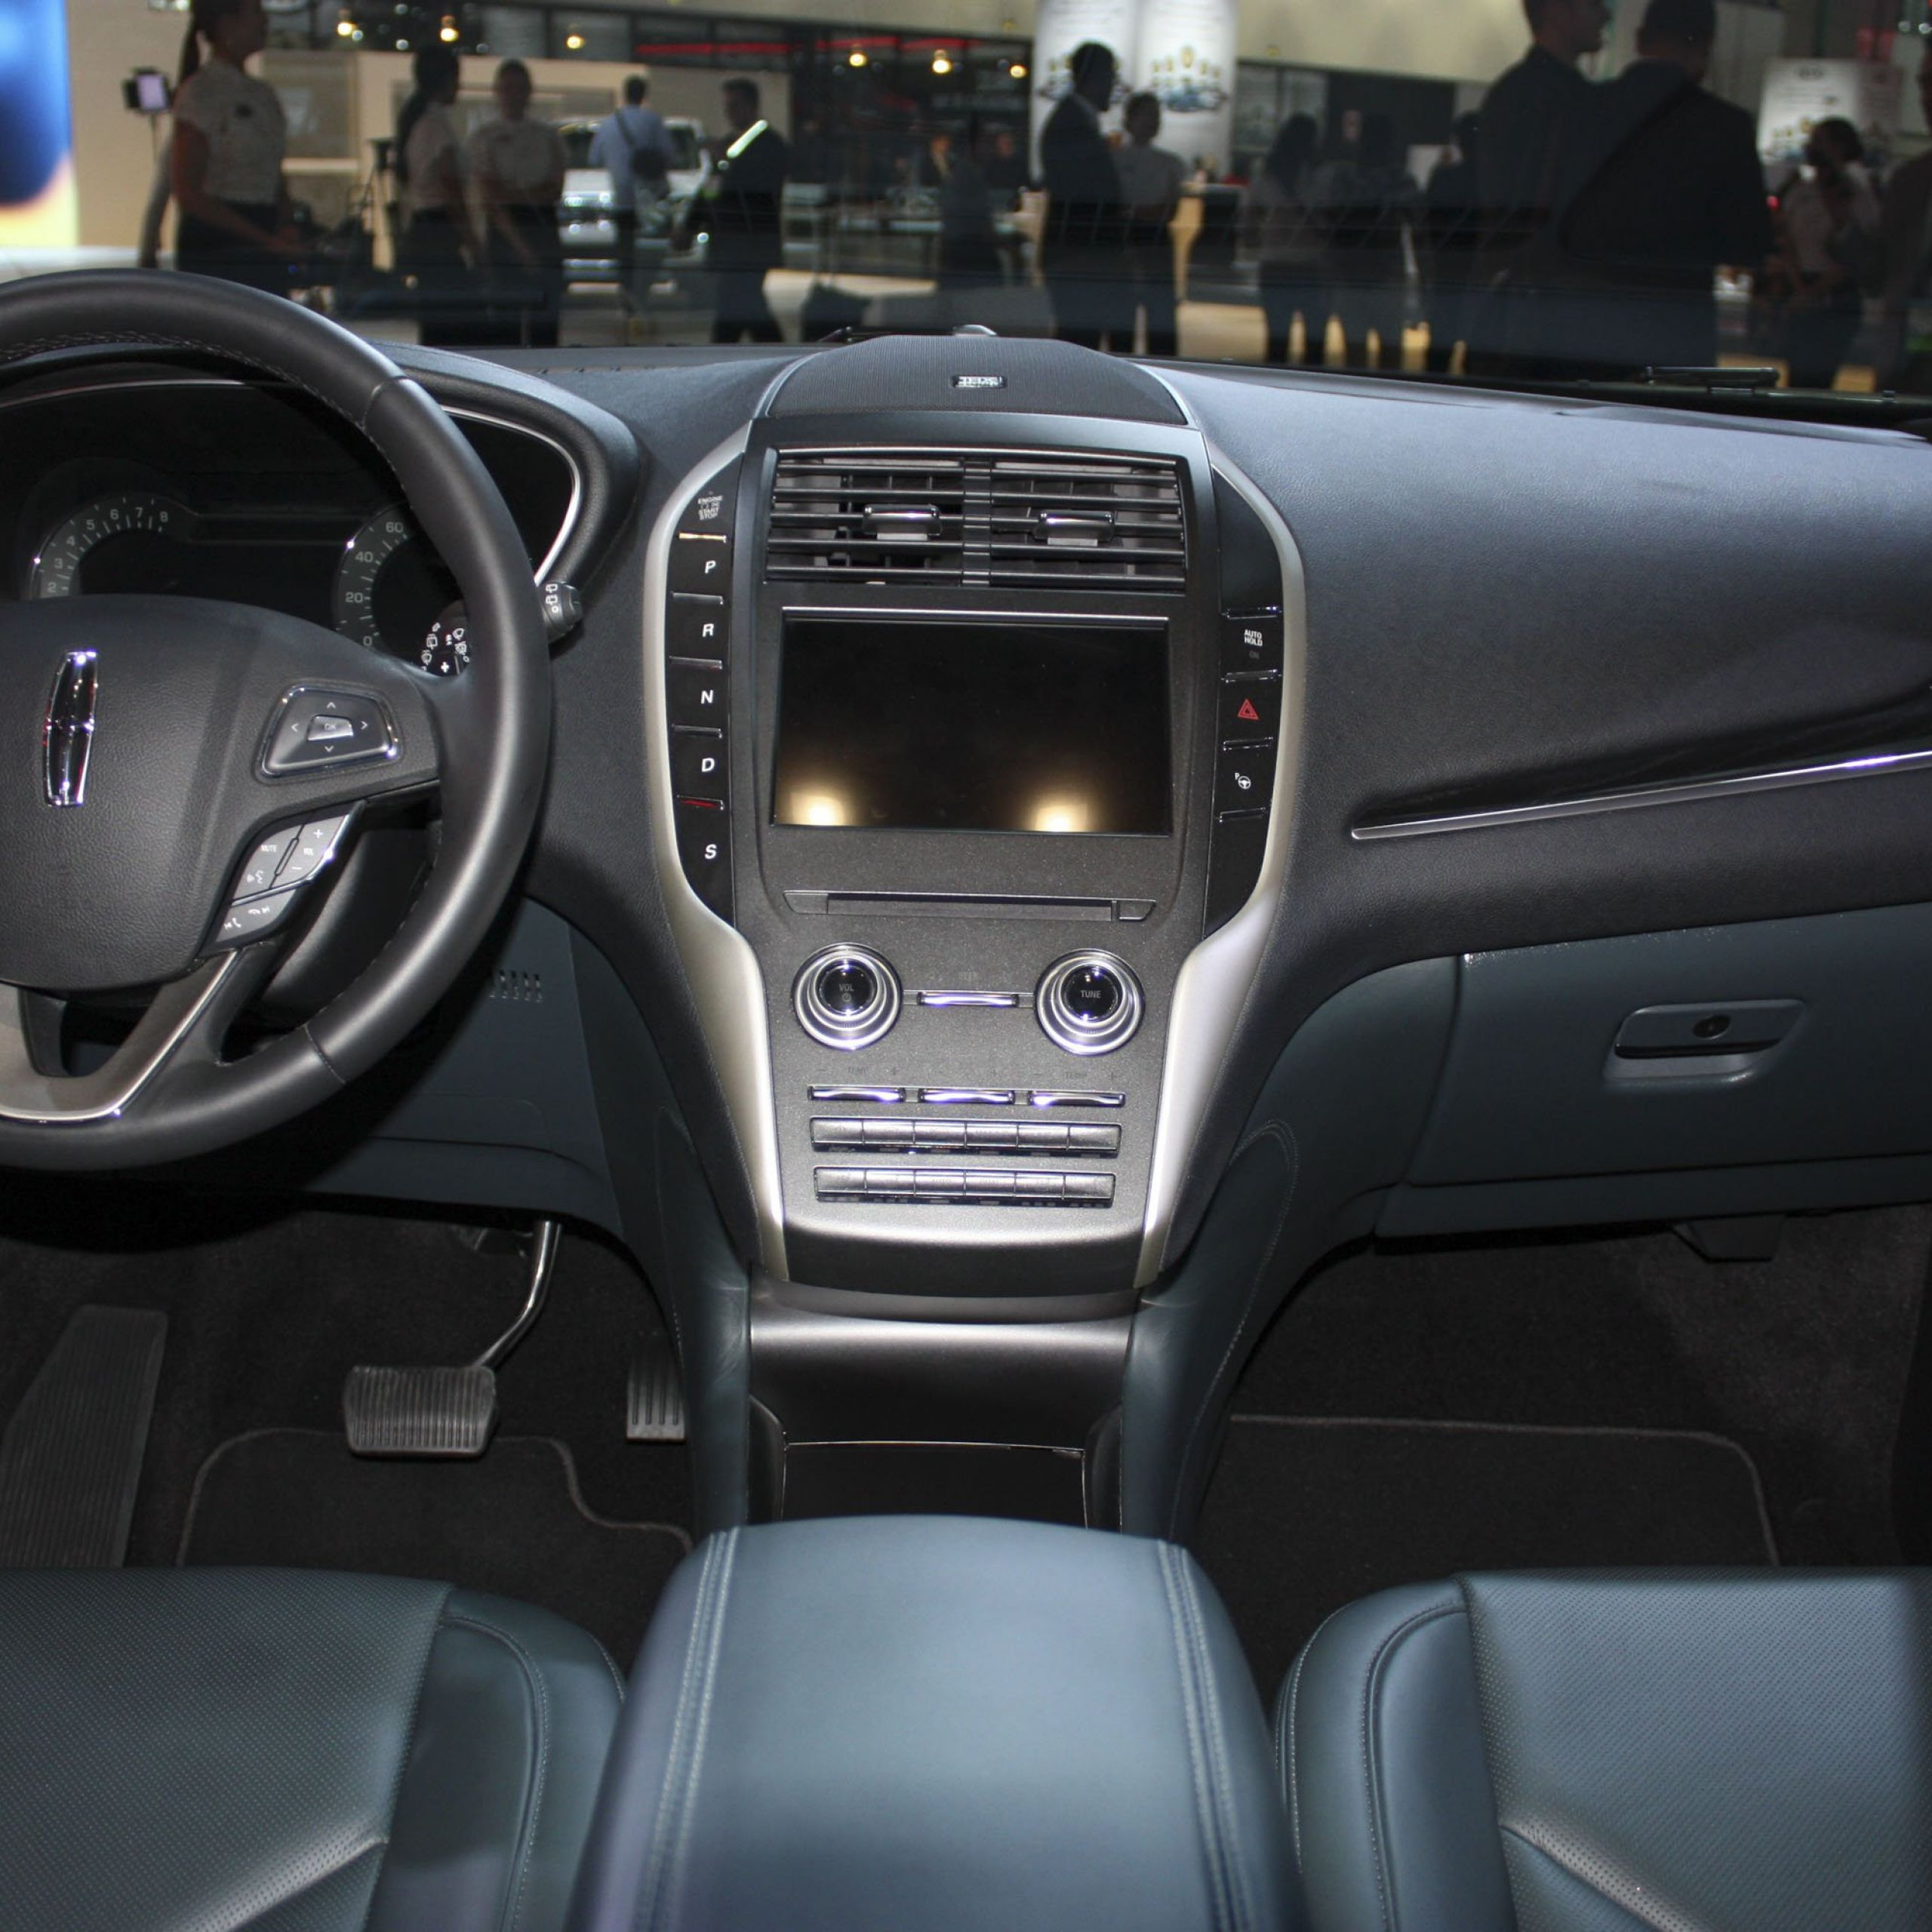 2012 Lincoln Mkz Luxury ford Colors What Do You Like Not Like What Do You Want to